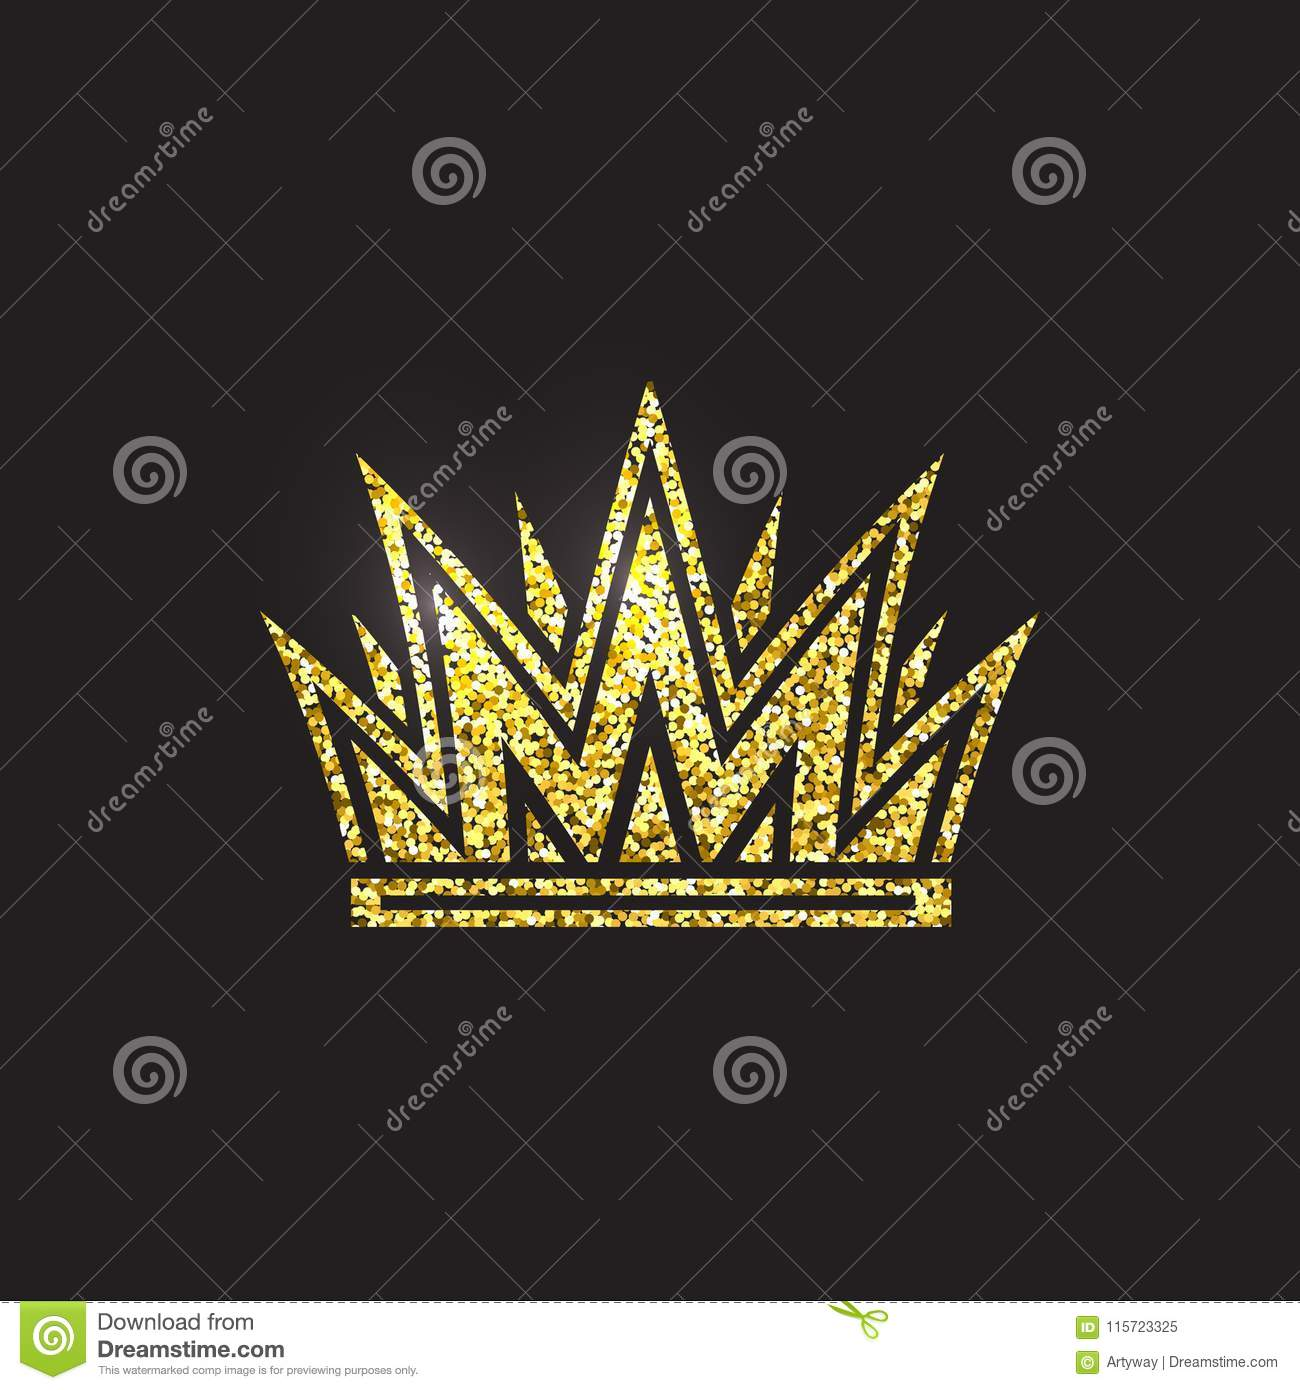 Queen crown, royal gold headdress. King golden accessory. Isolated vector illustrations. Elite class symbol on black